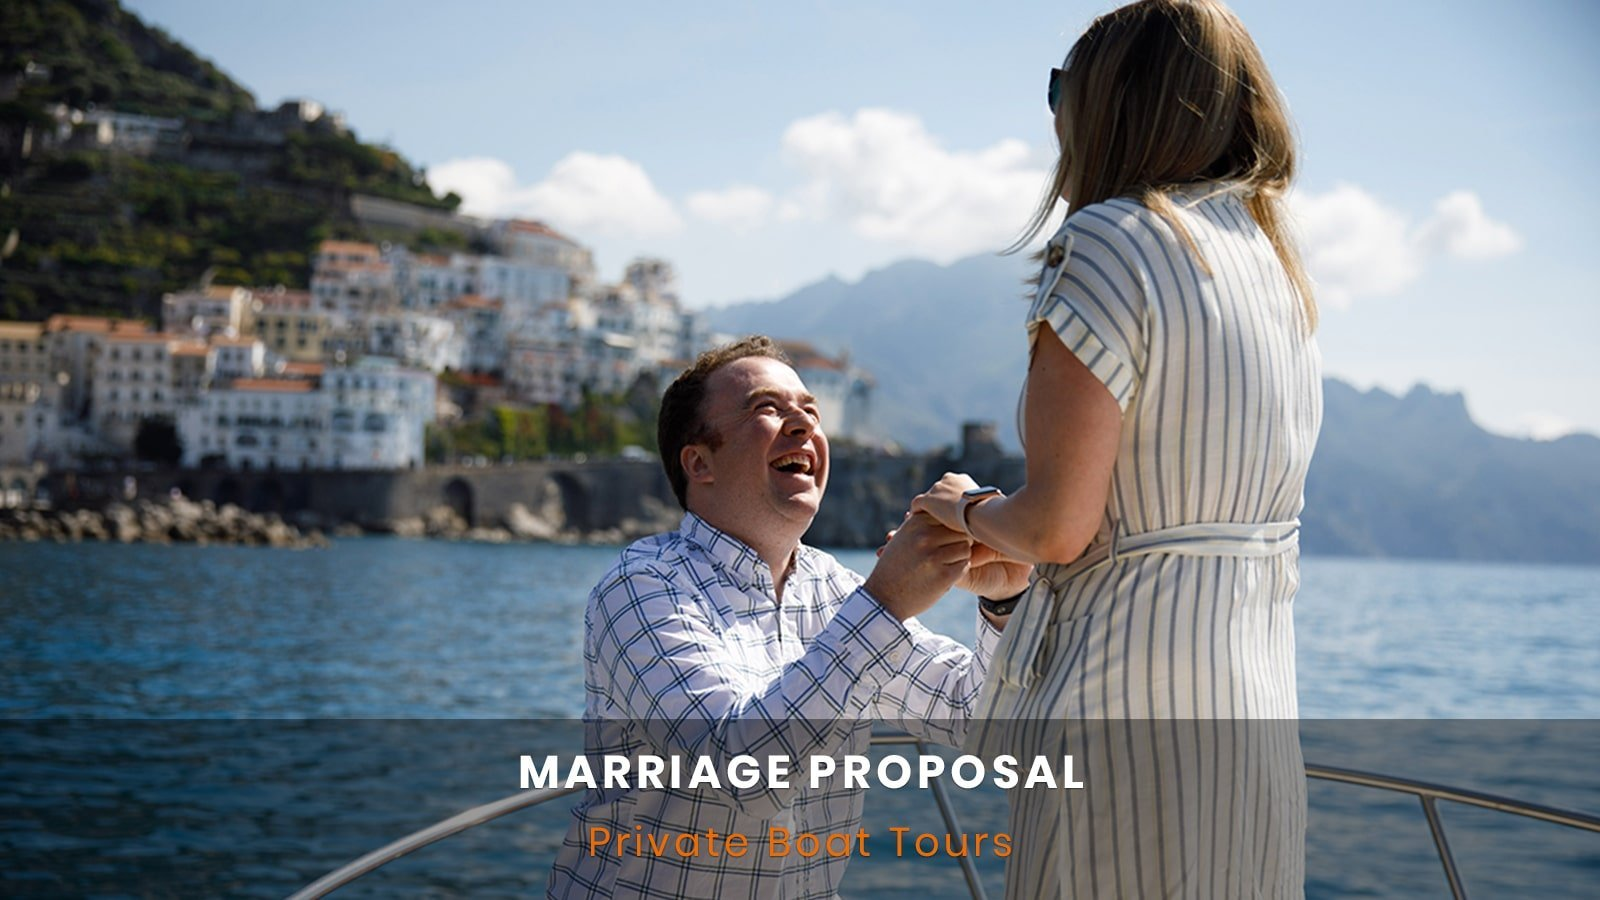 Marriage Proposal by boat